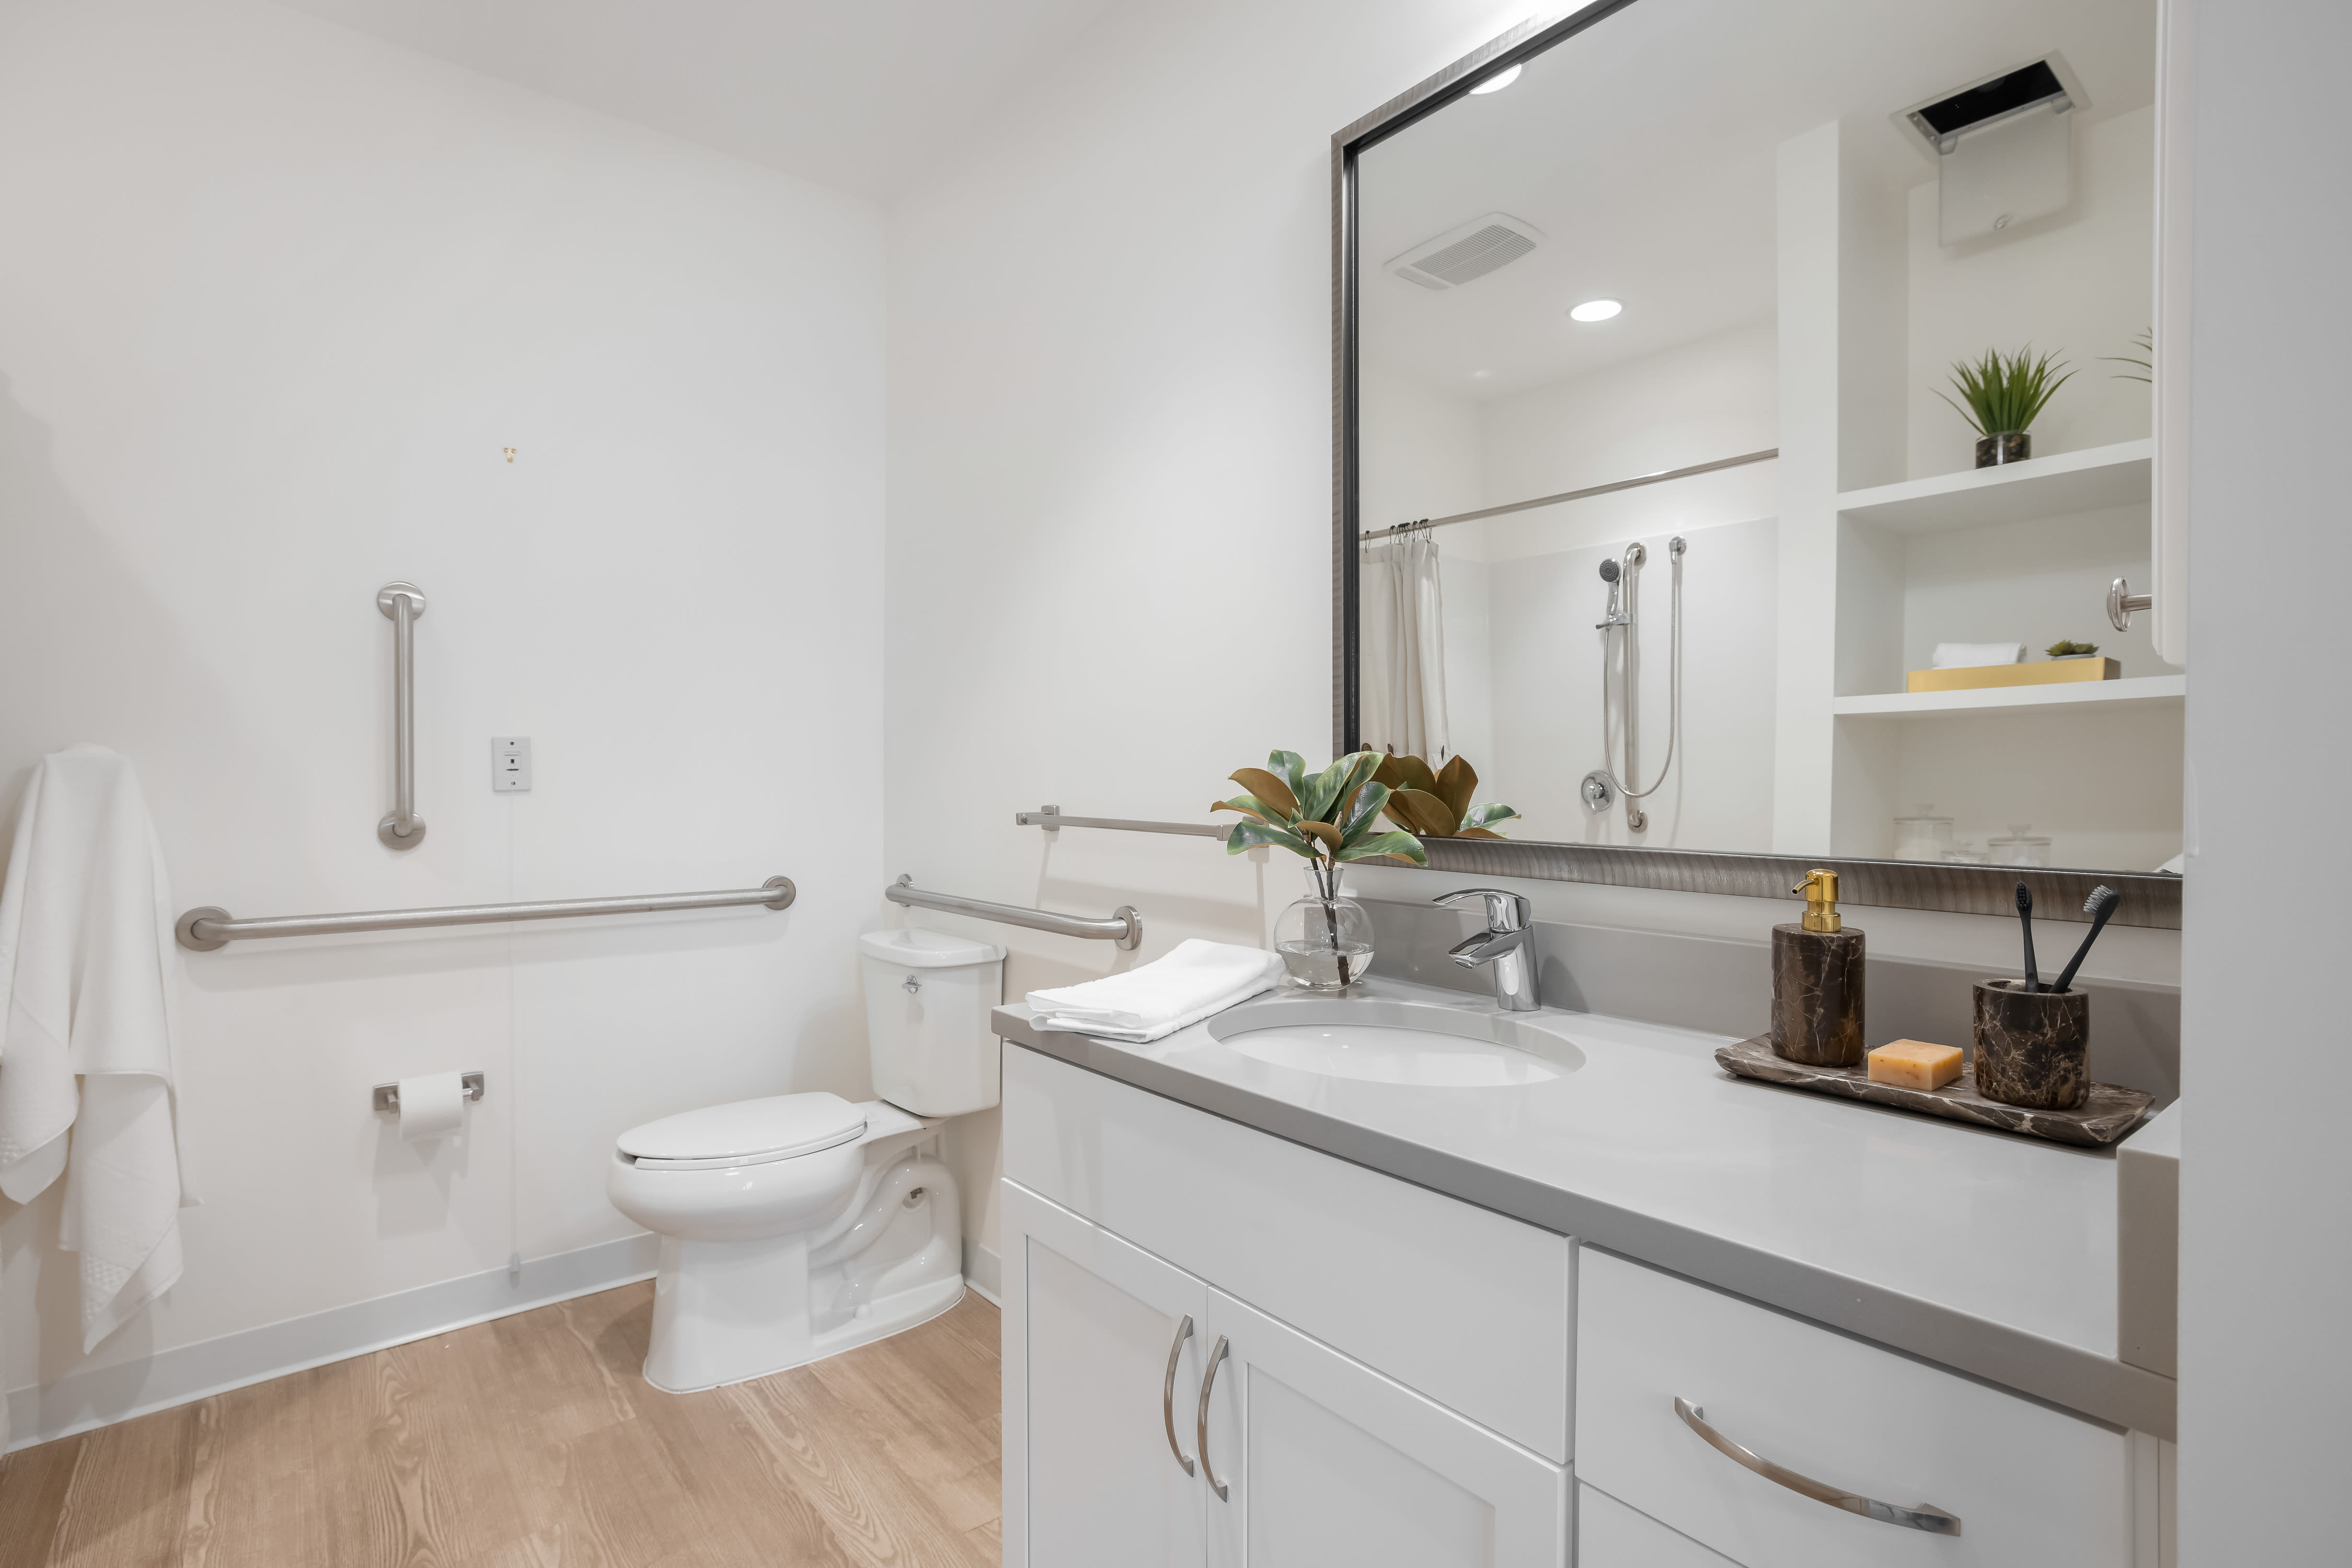 Bathroom at Anthology of King of Prussia – Now Open in King of Prussia, Pennsylvania